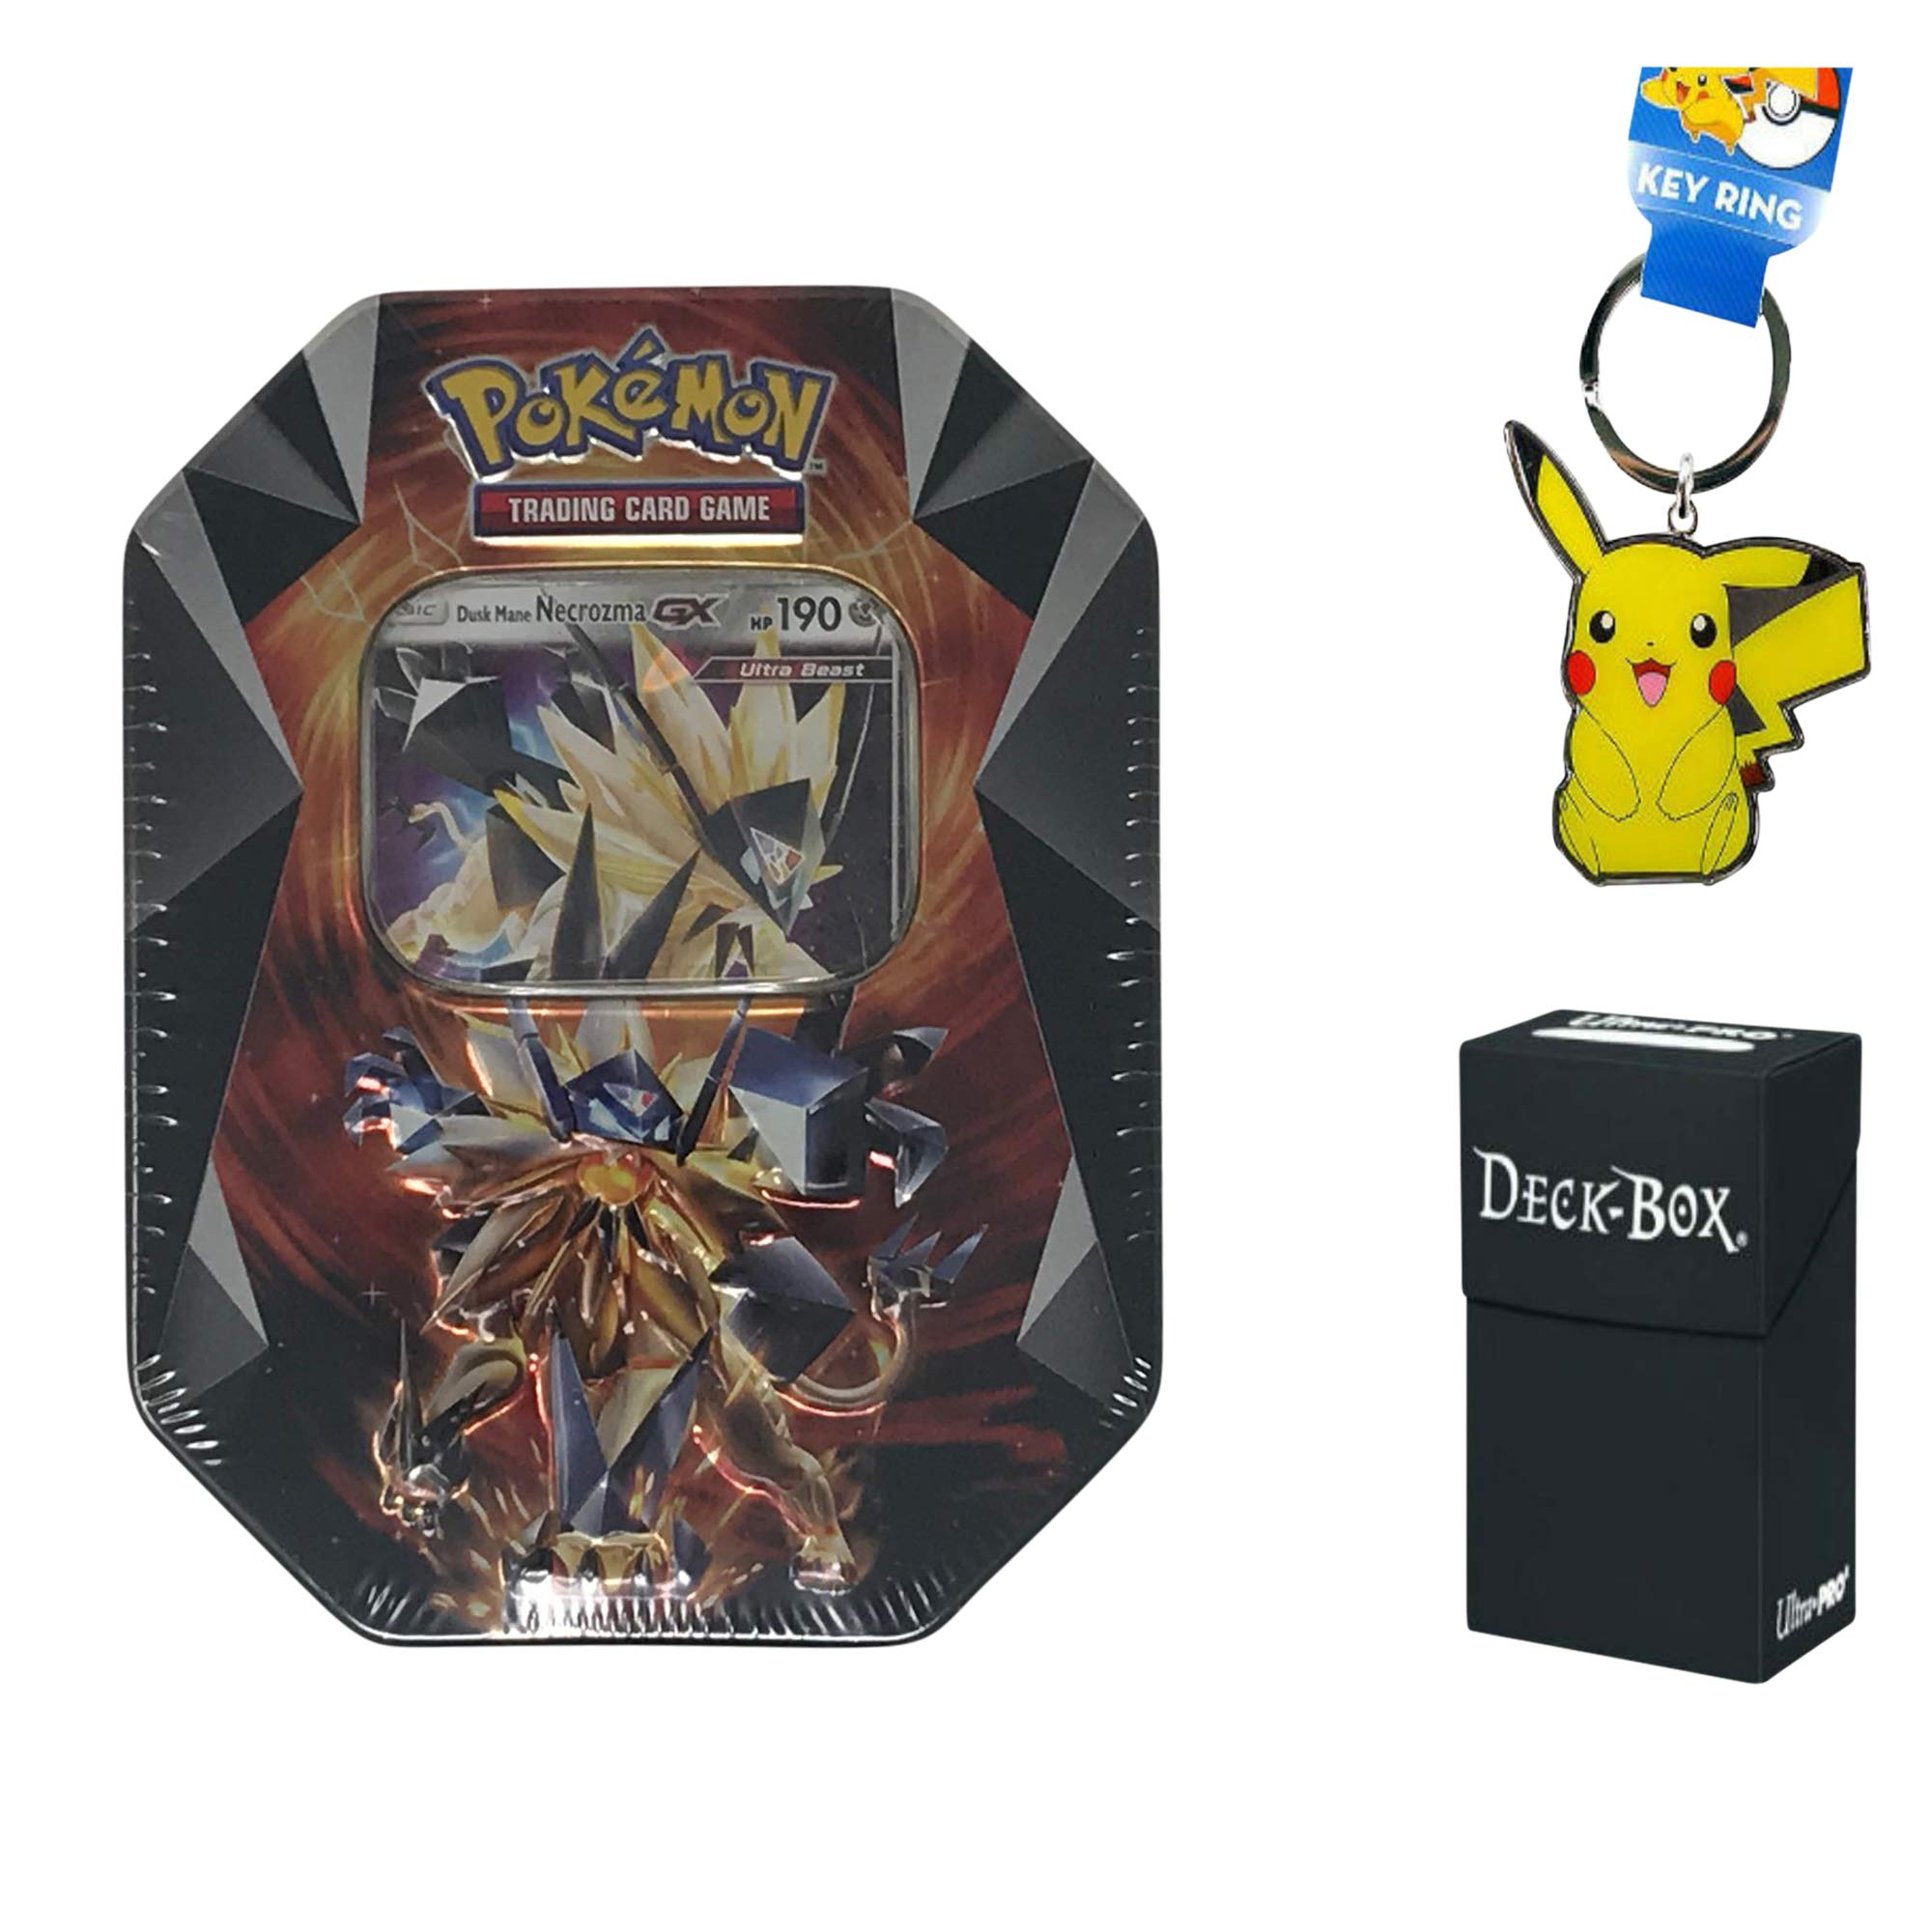 Pokemon Ultra Prism Necrozma GX Tin Dusk Mane - Pokemon Card Tin Bundle Includes 4 Pokemon Sun and Moon Series Booster Packs, Bonus Pikachu Keychain and Ultra Pro Pokemon Card Deck Box